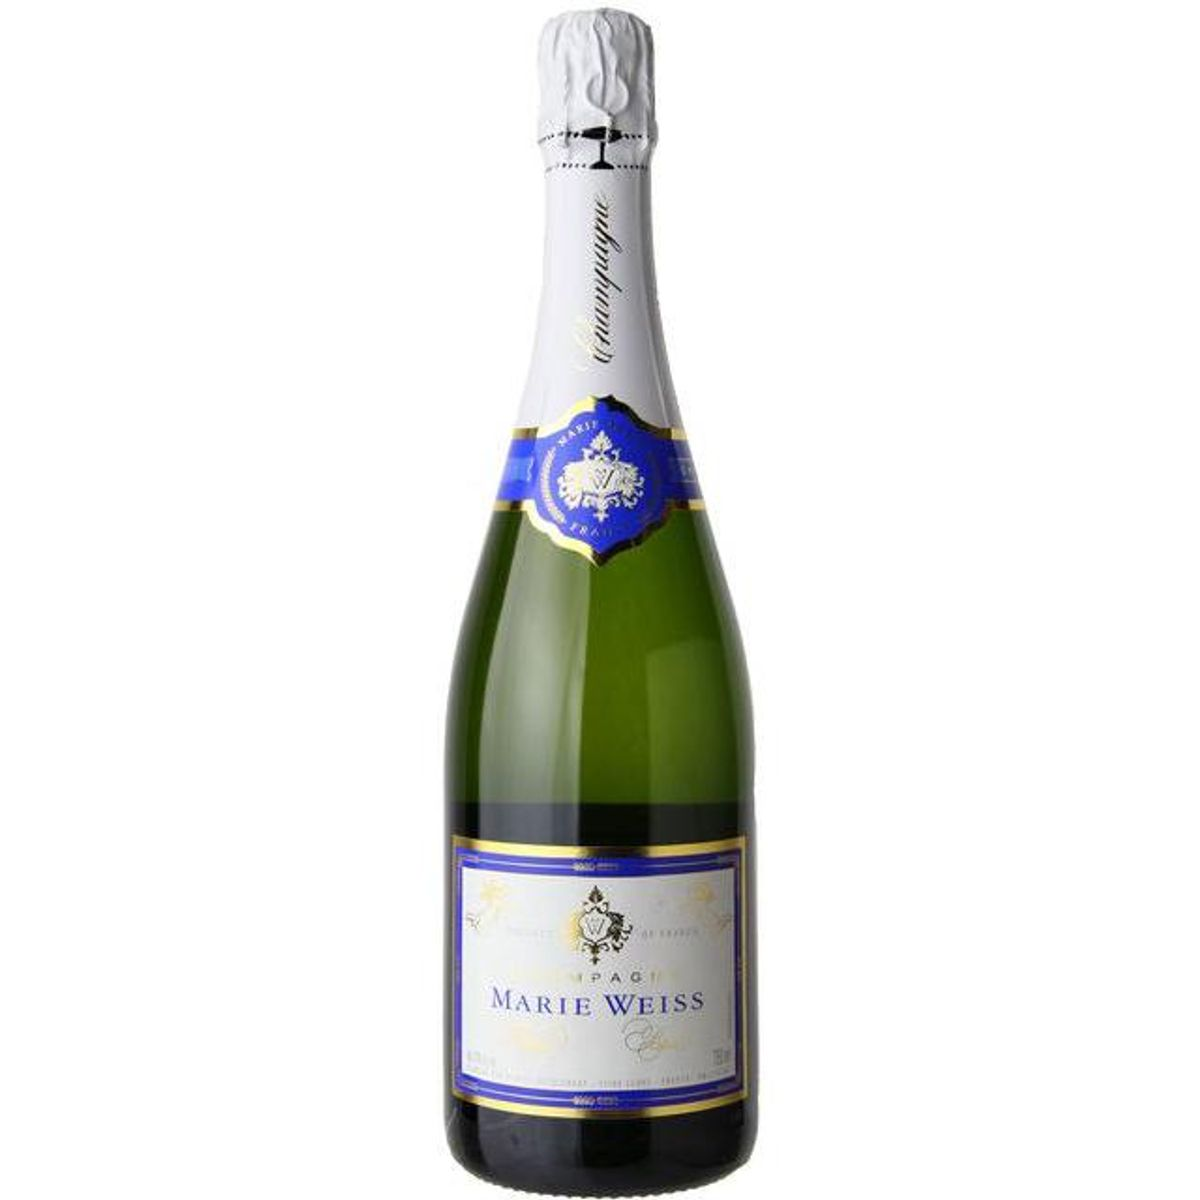 marie weiss brut champagne